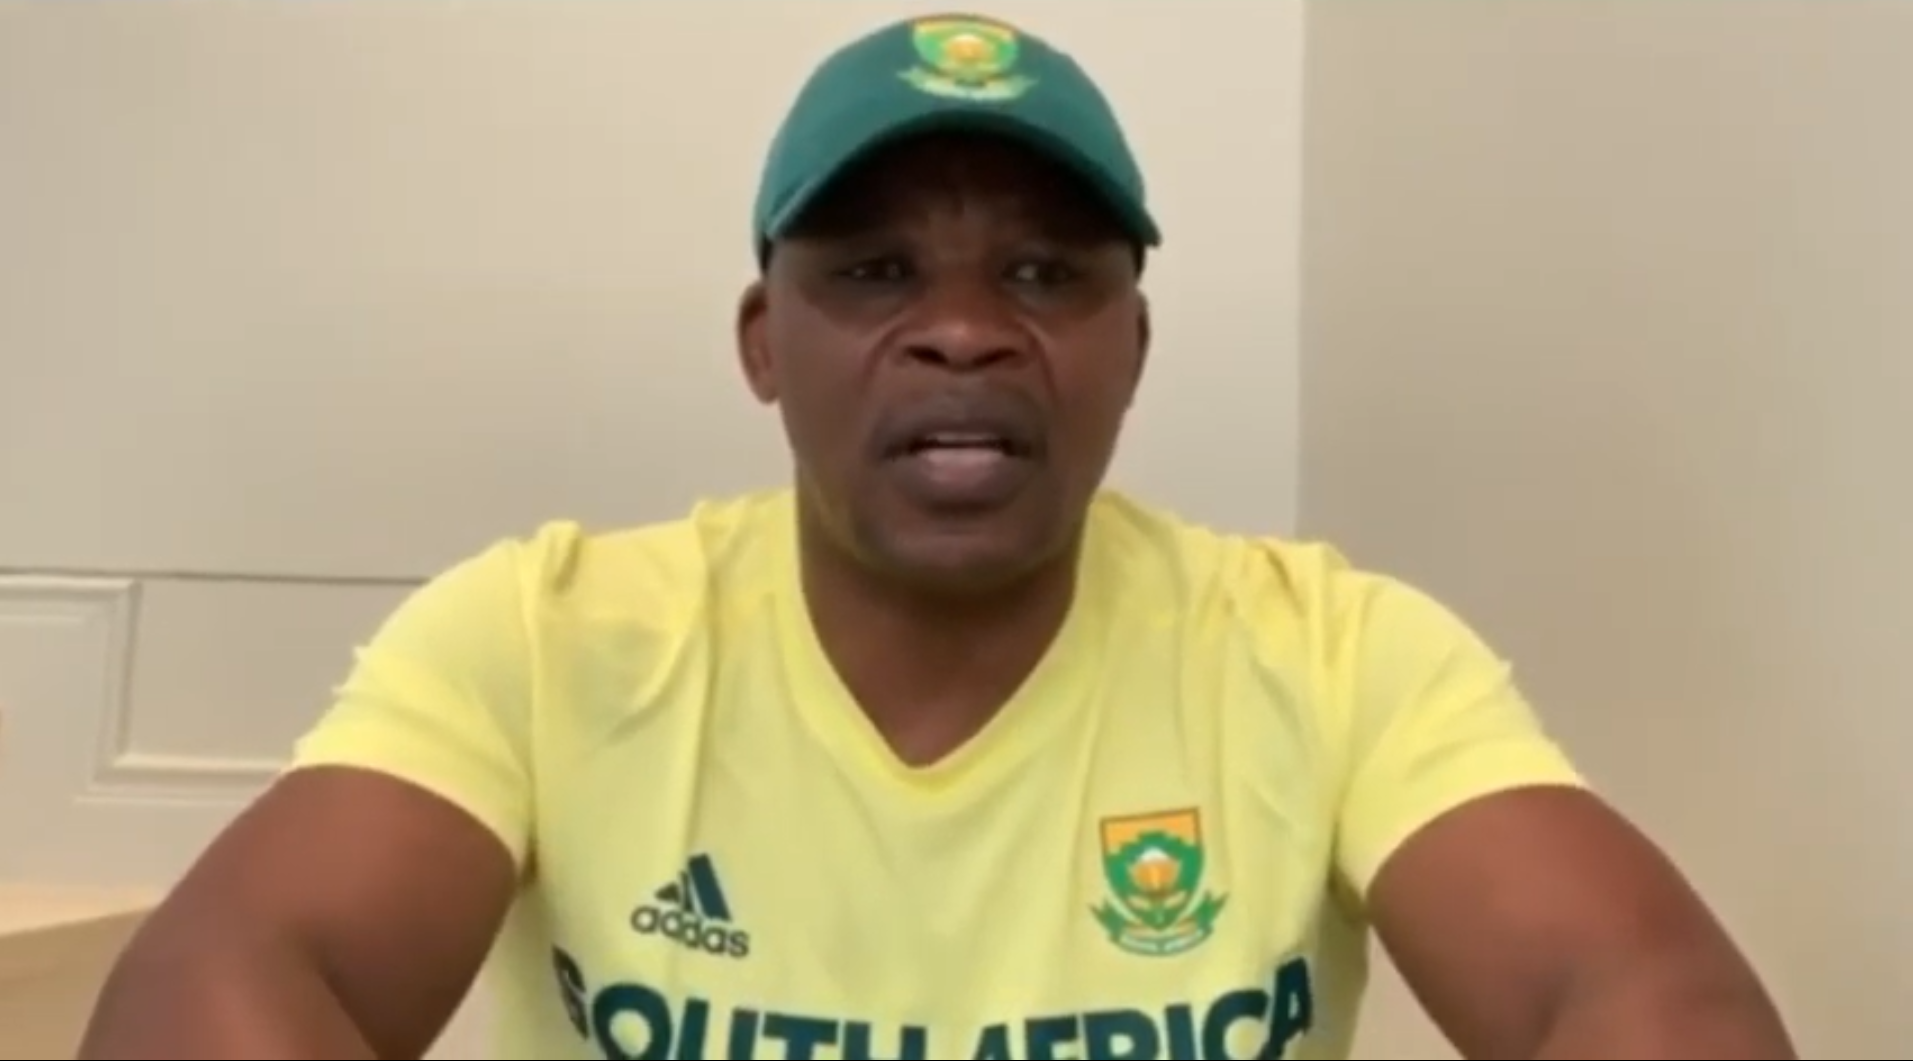 Athletics South Africa President confident Manyonga can clear his name